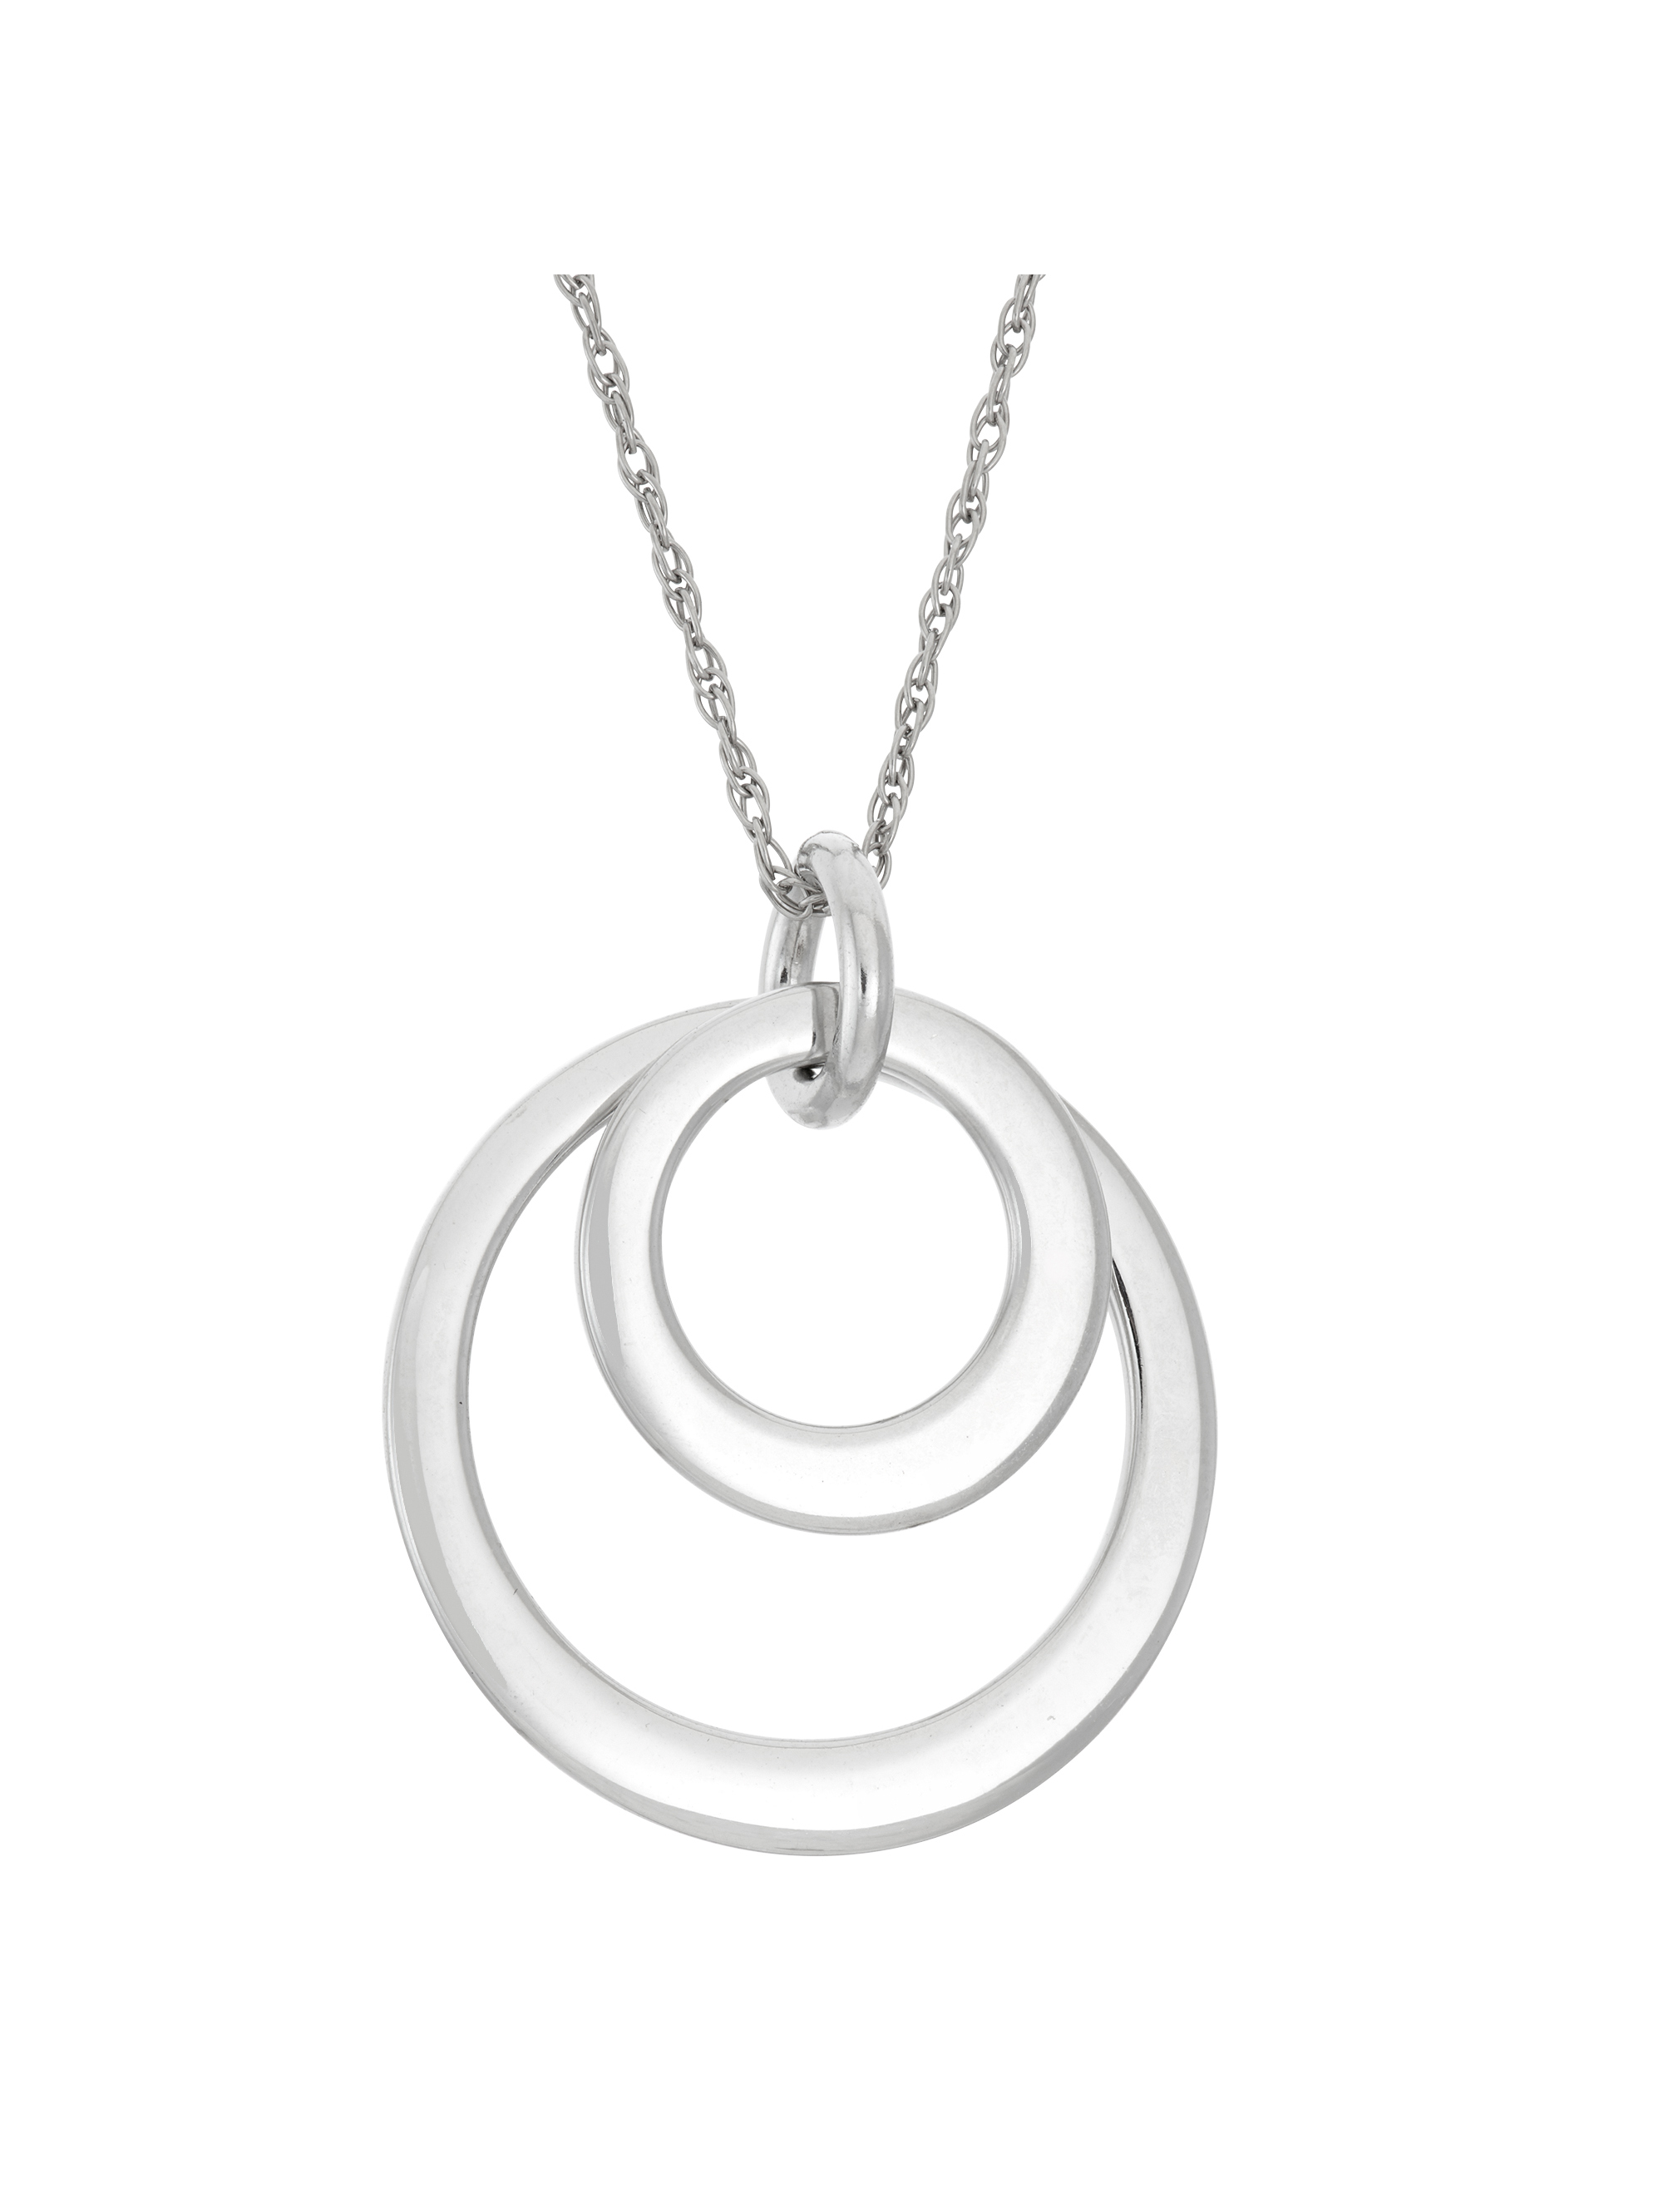 Sterling Silver Double Graduated Circle Pendant 18